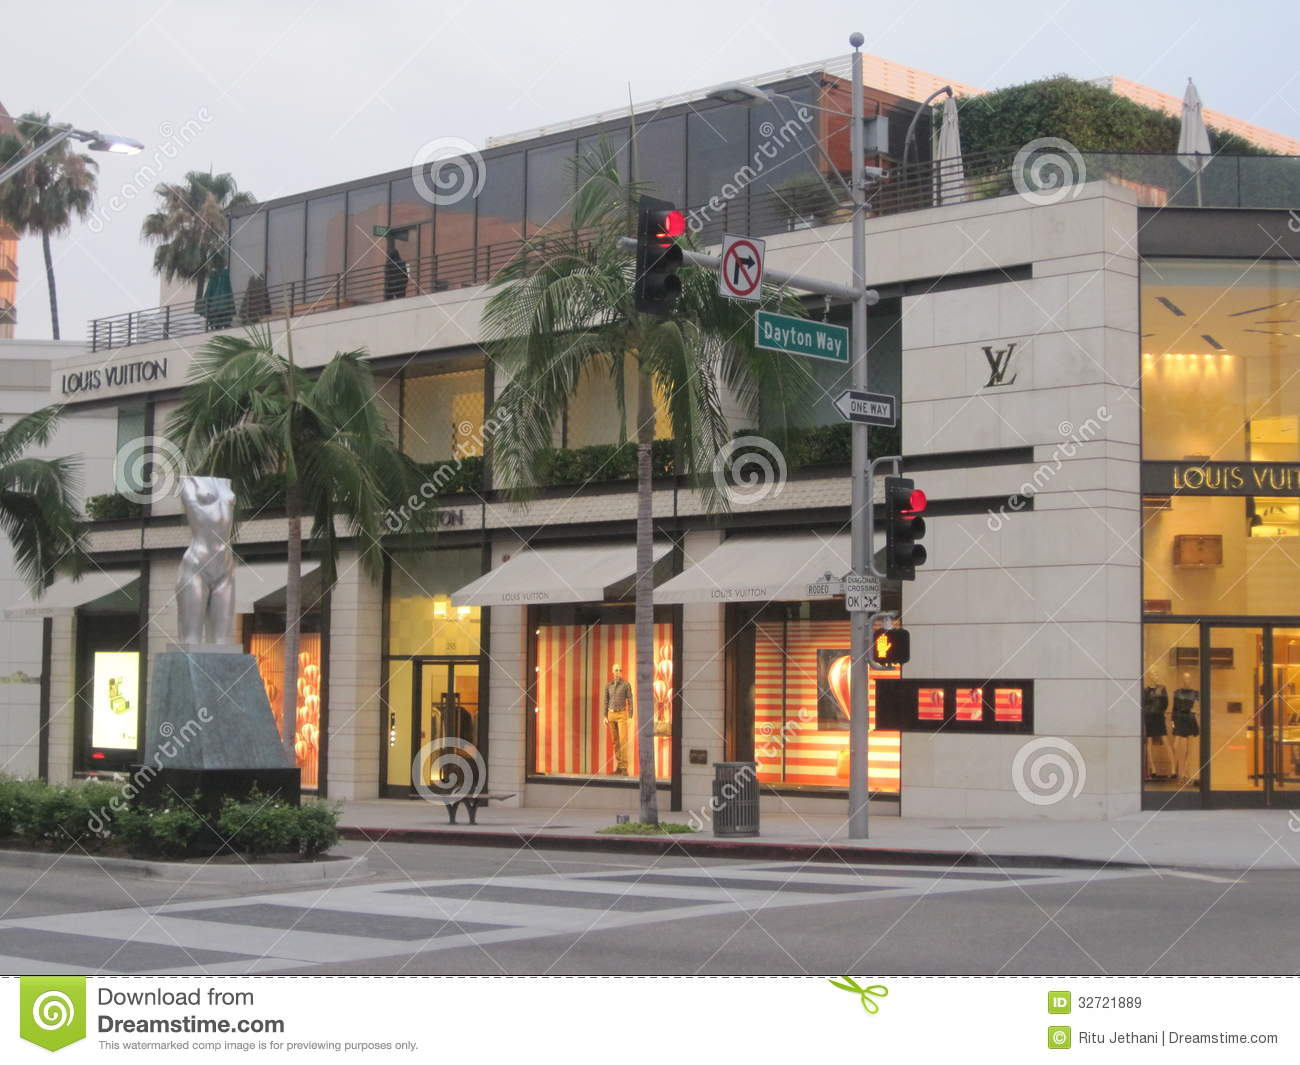 Deposito di Louis Vuitton a Rodeo Drive in Beverly Hills